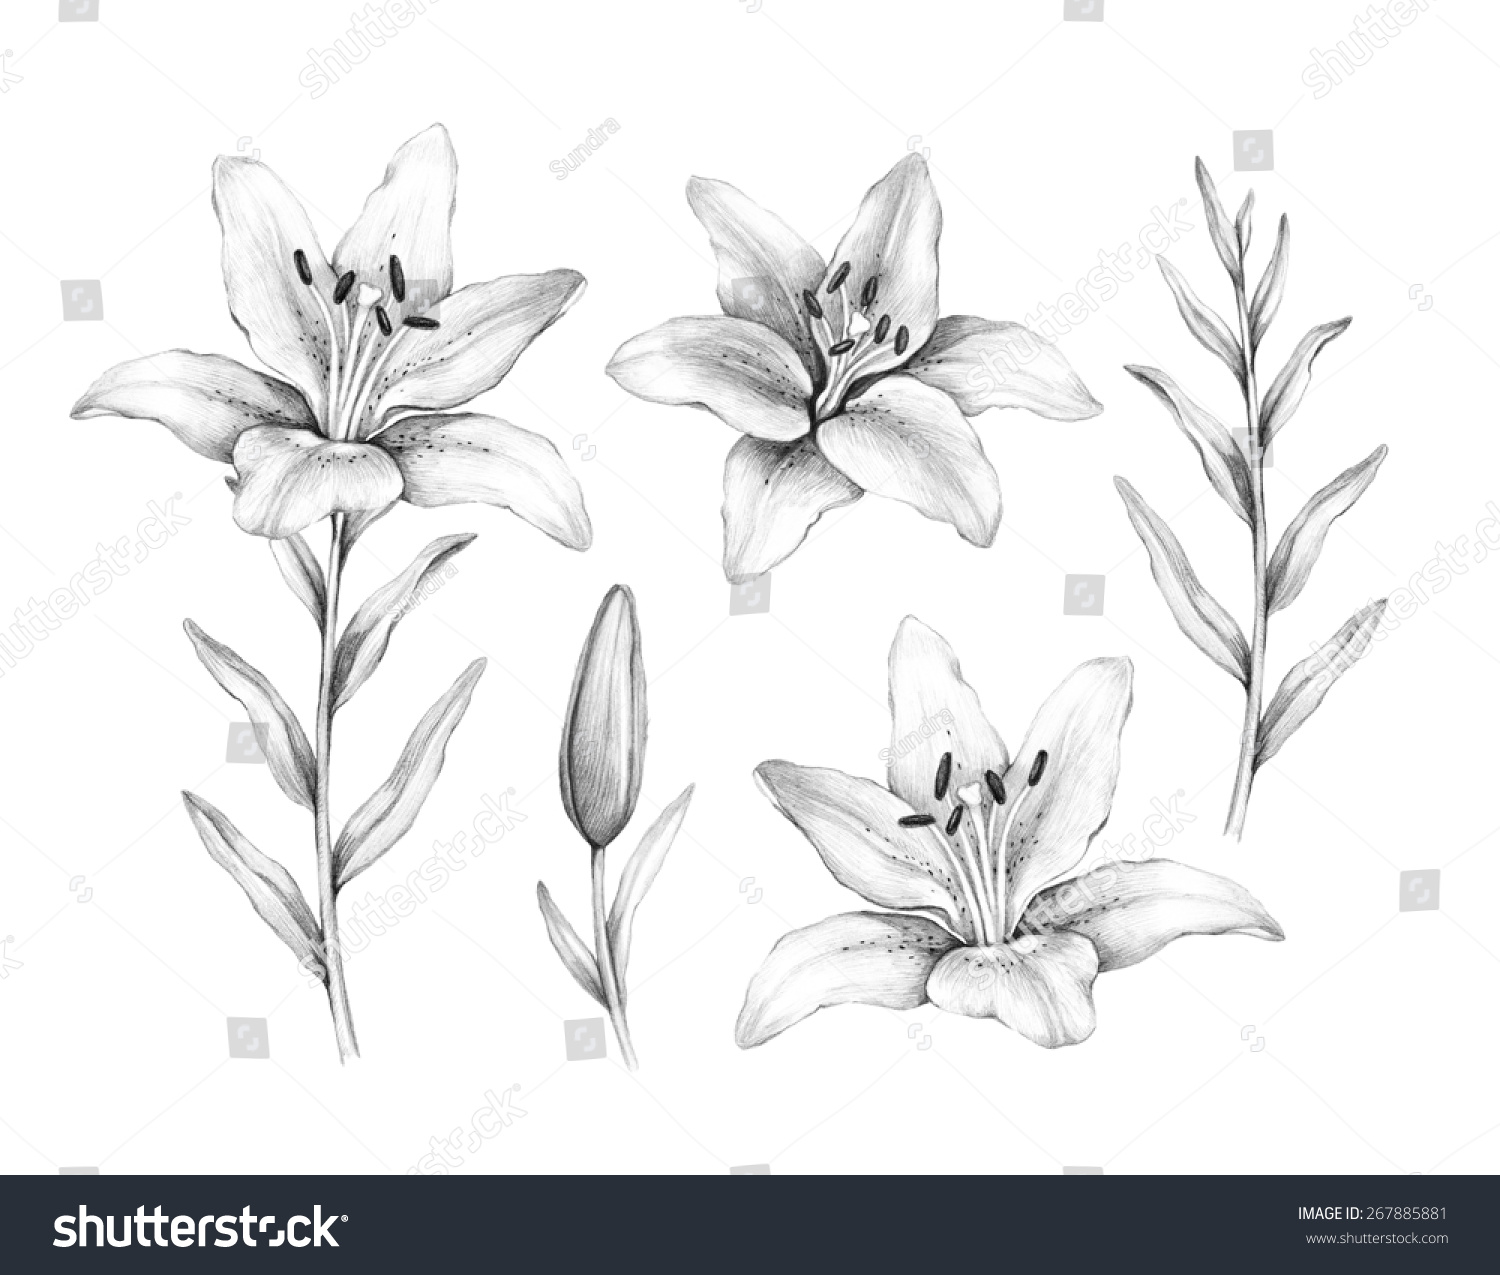 Pencil drawing lily flower stock illustration 267885881 shutterstock pencil drawing of lily flower izmirmasajfo